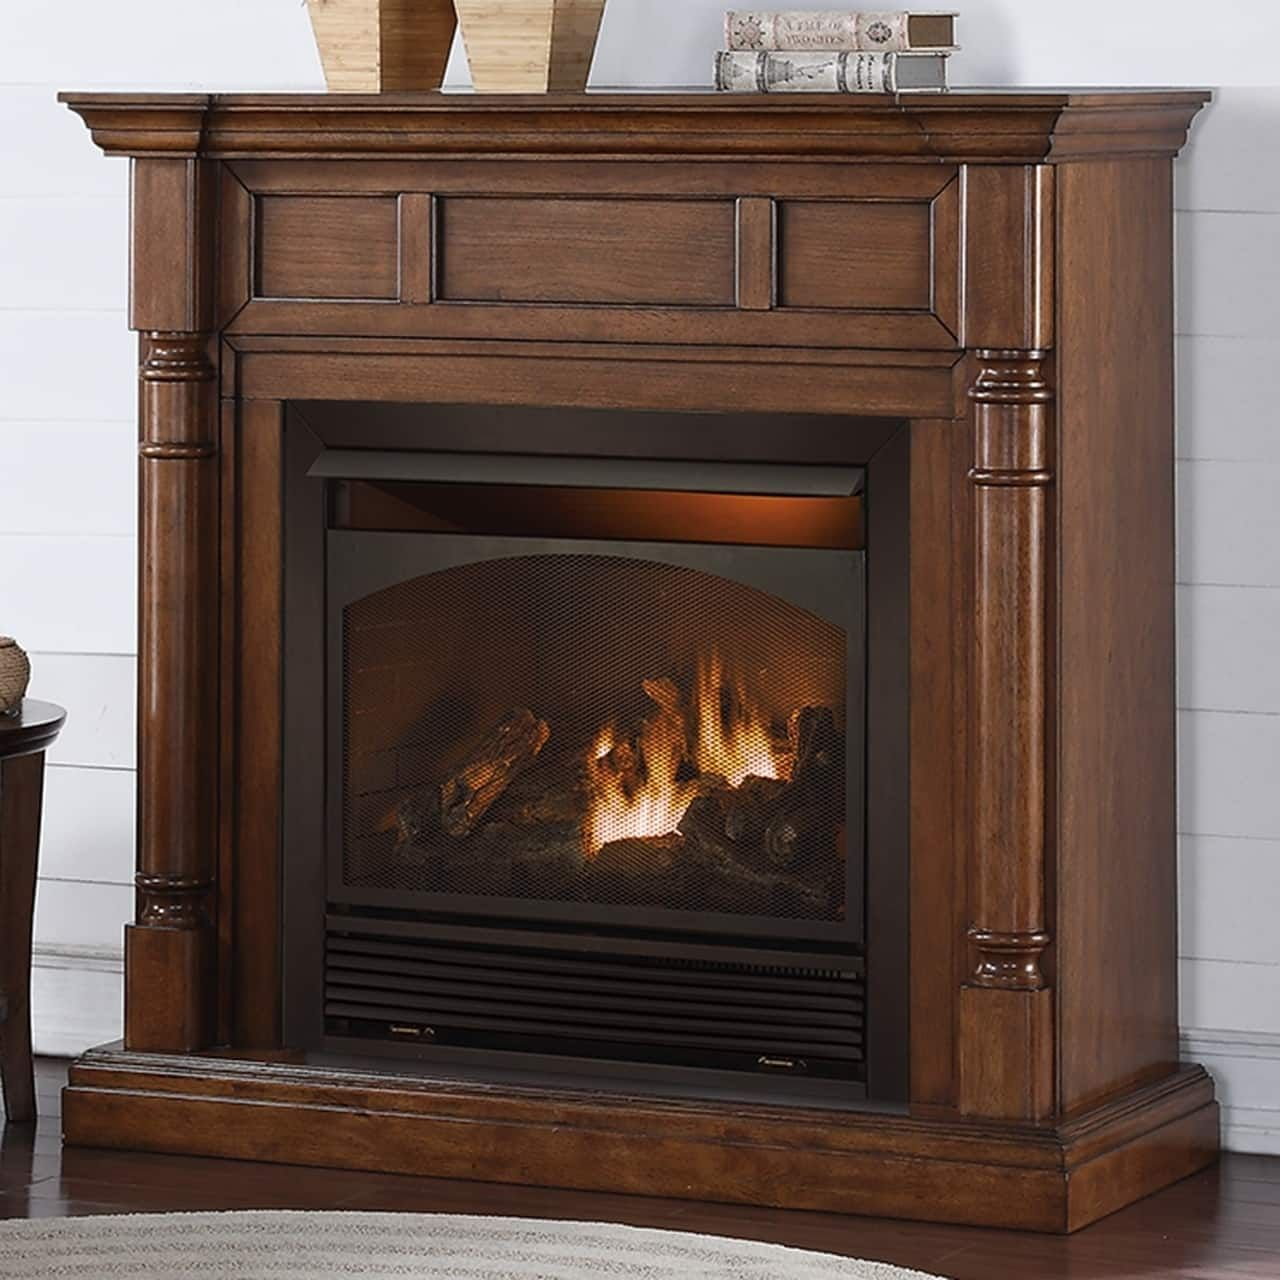 Duluth forge full size dual fuel ventless fireplace 32000 btu remote control walnut finish white